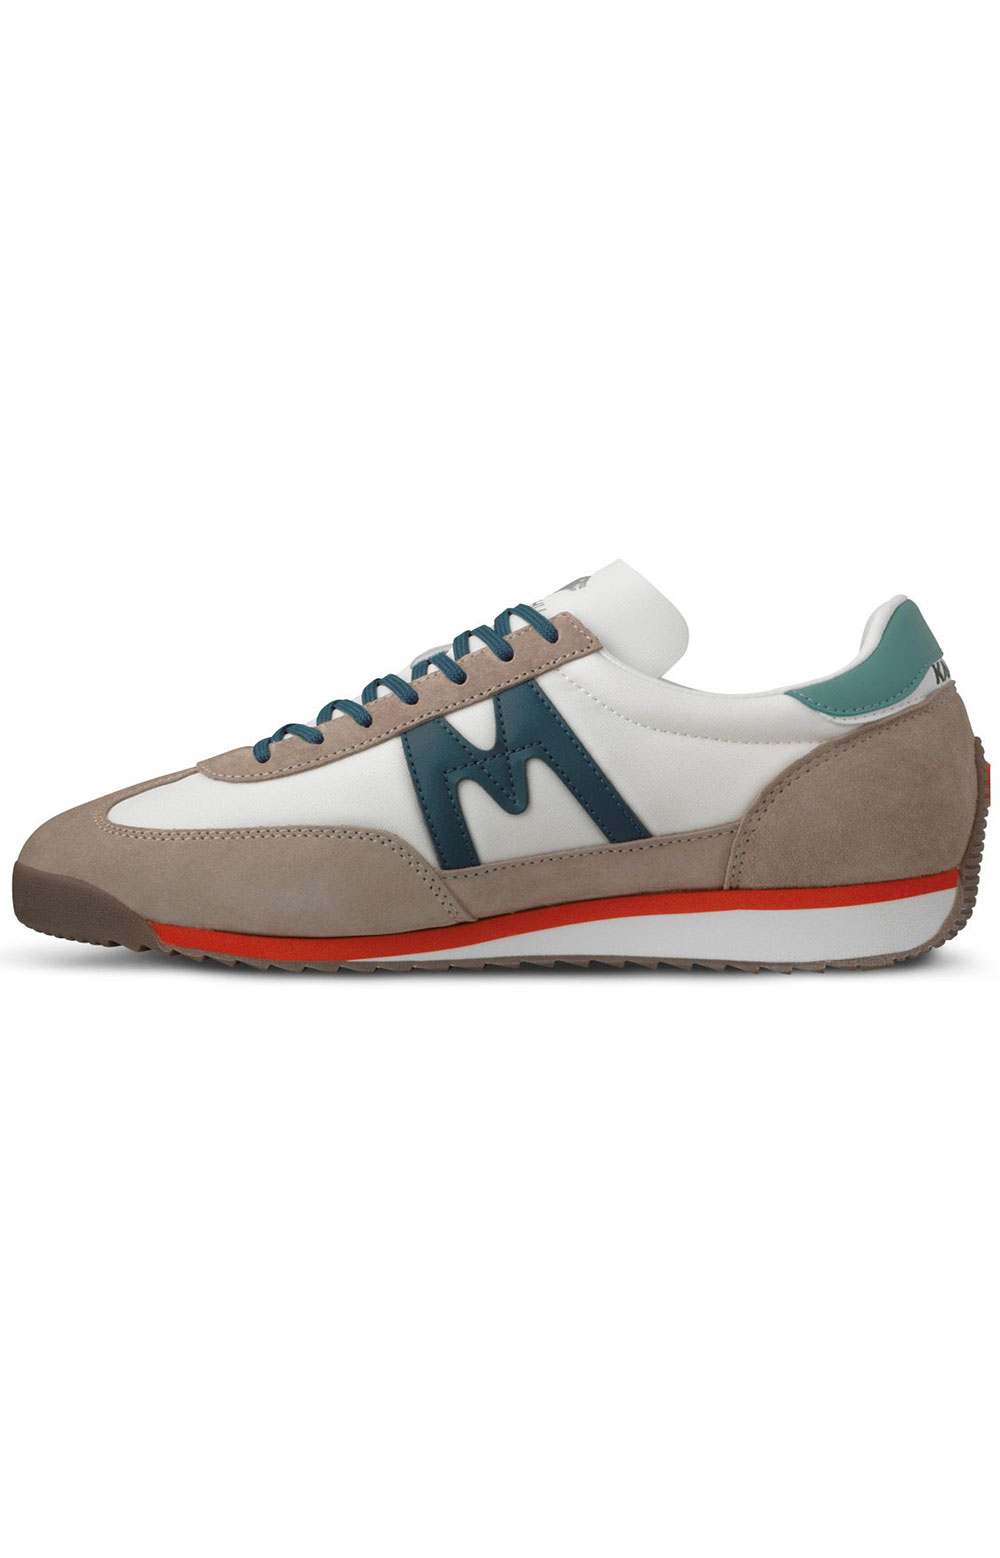 (F805032) Mestari Shoes - Peyote/Atlantic Deep  4